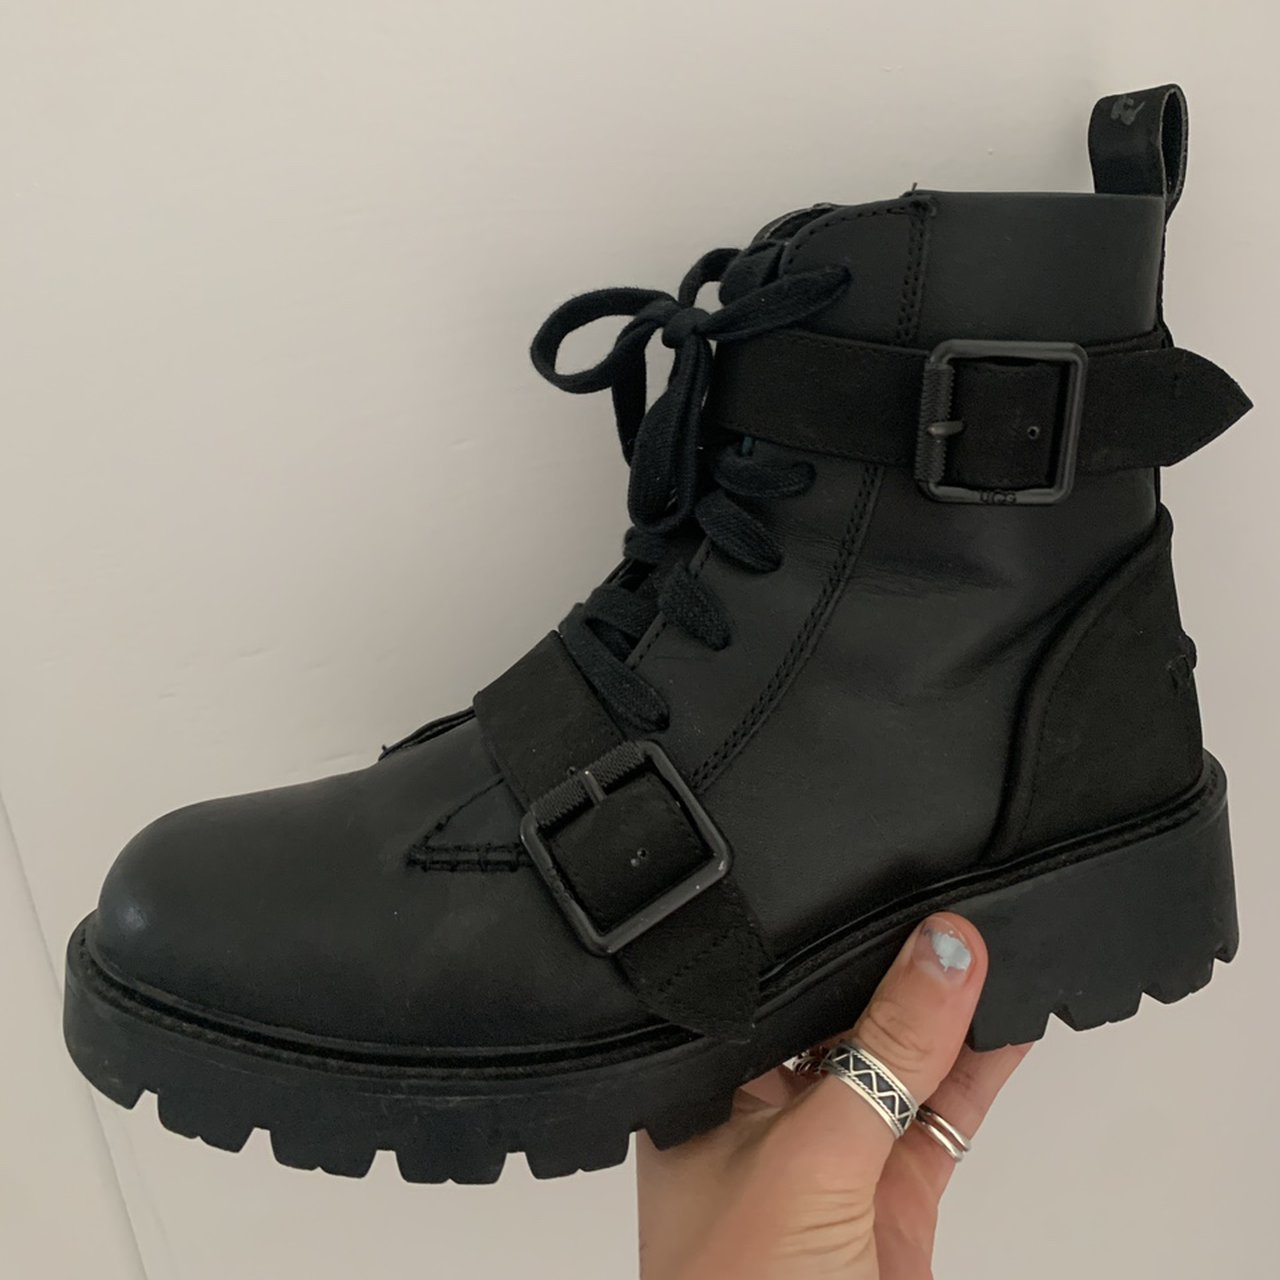 Black strap Ugg boots - laced boots